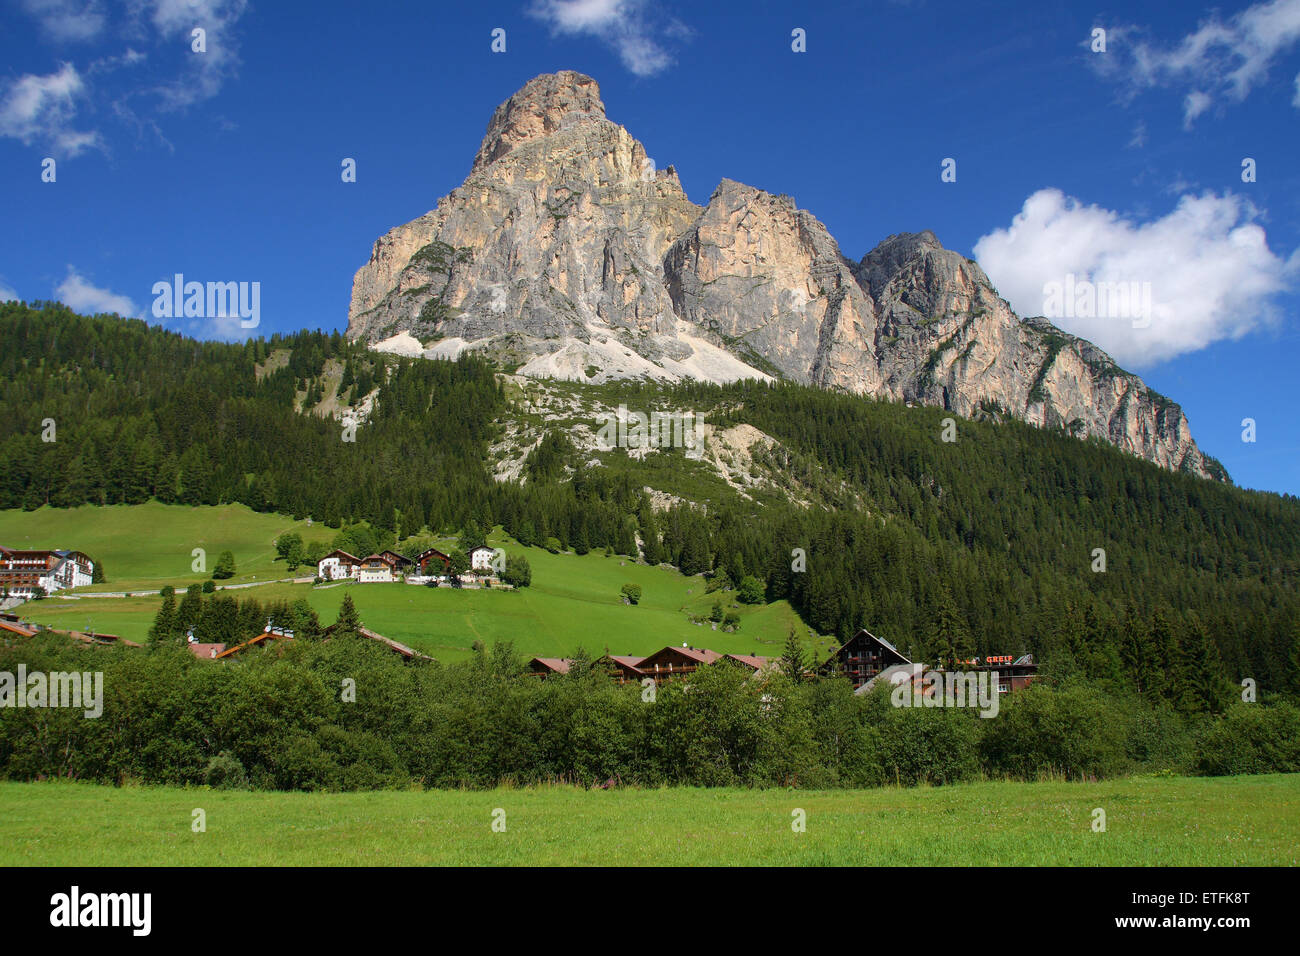 Mount Sassongher from the village of Corvara in Badia, Dolomites, Italy. Stock Photo